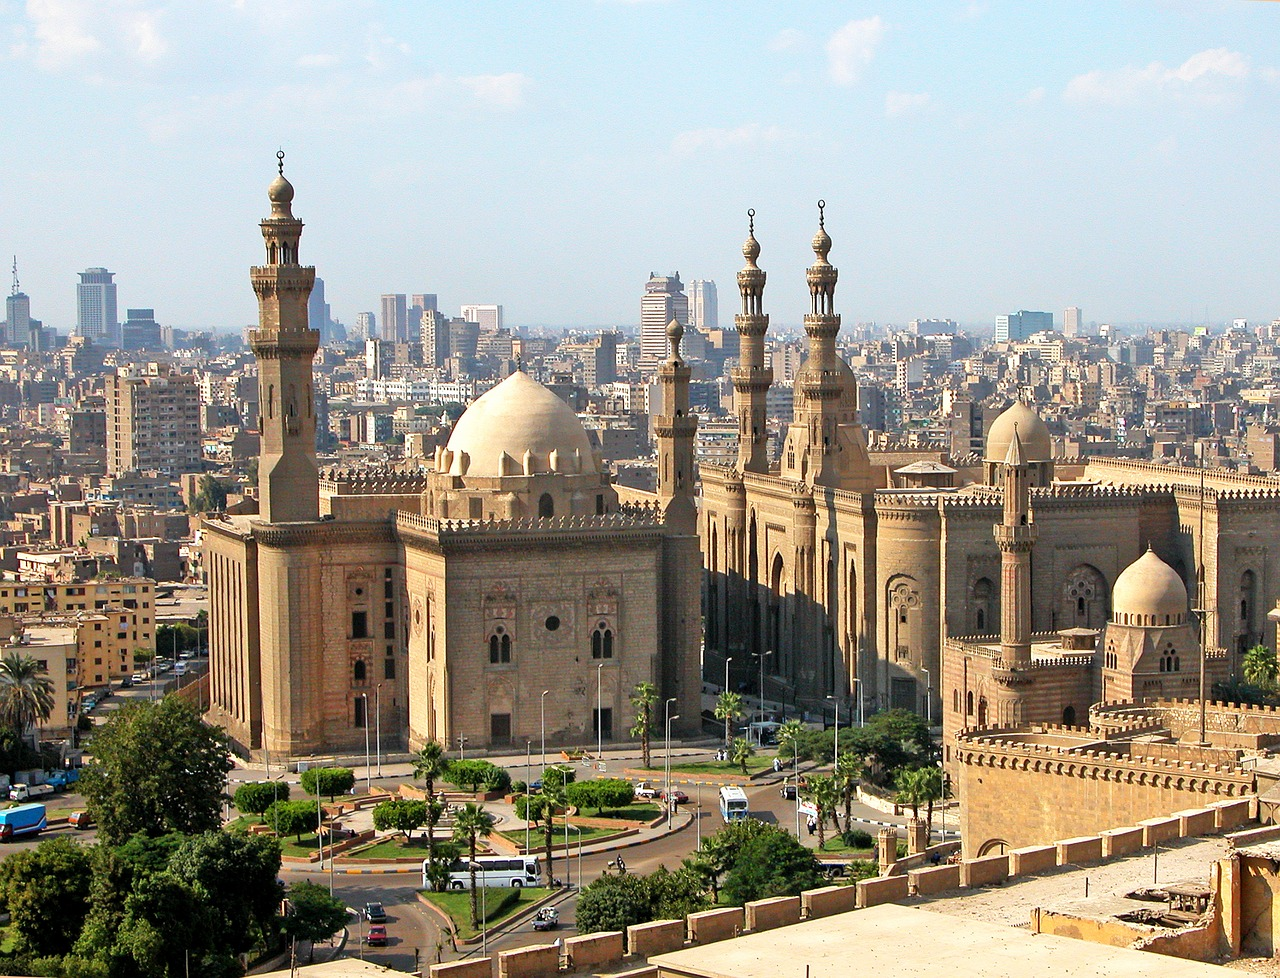 The Egyptian Criminal Justice System's Readiness to Prosecute Core Crimes: Goest Thou?